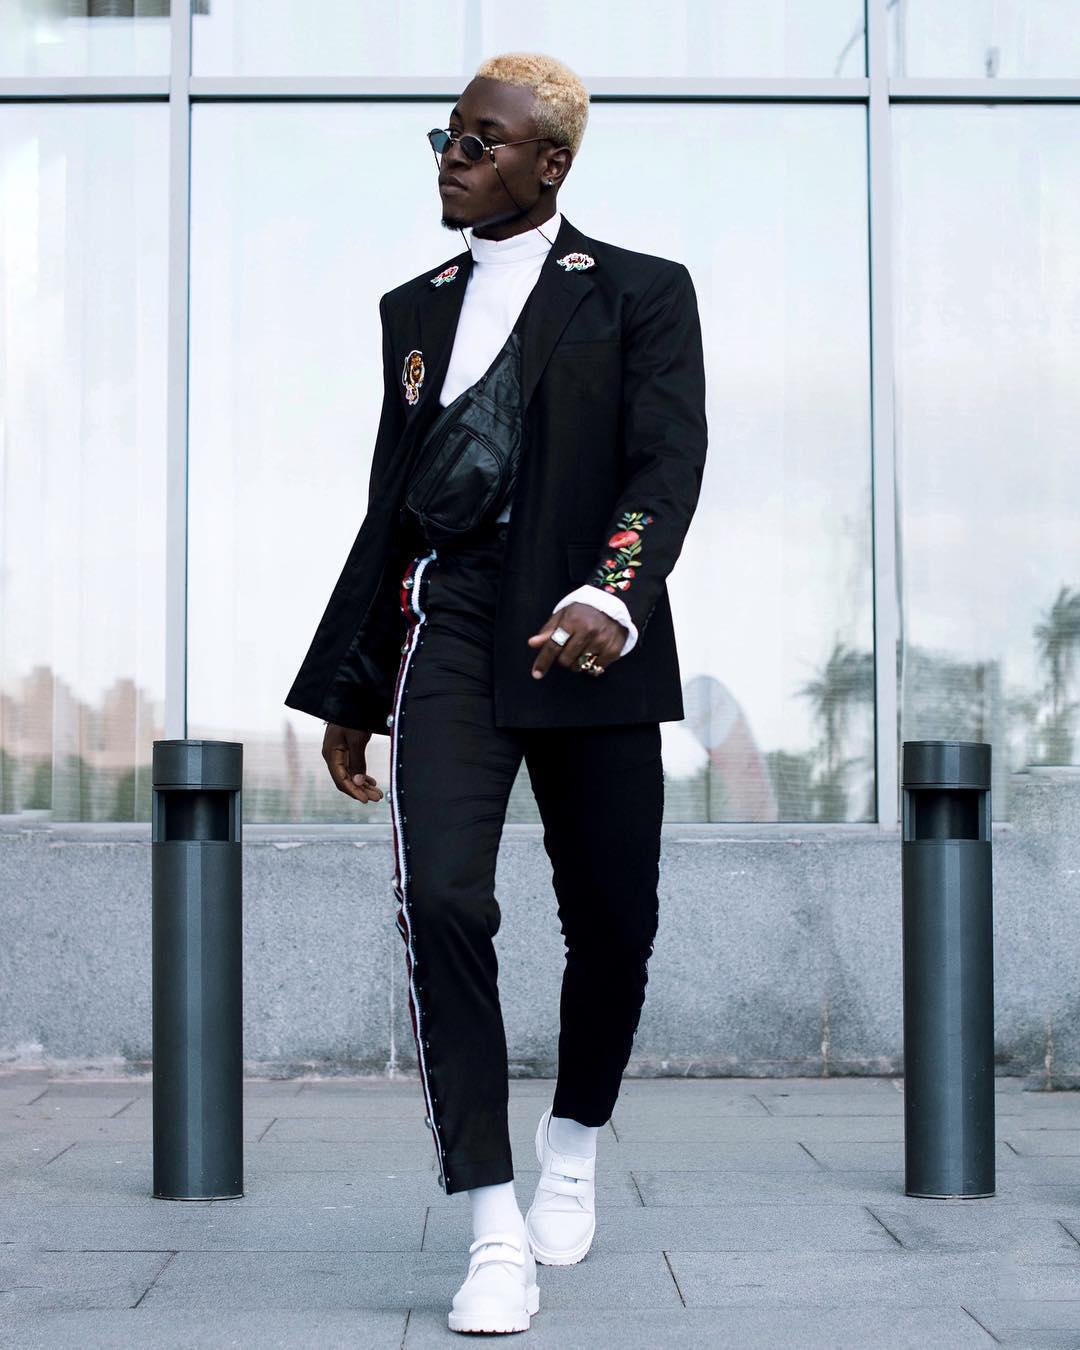 edgy-yet-artistic-check-daring-fierce-style-ghanaian-blogger-ernest-donkor